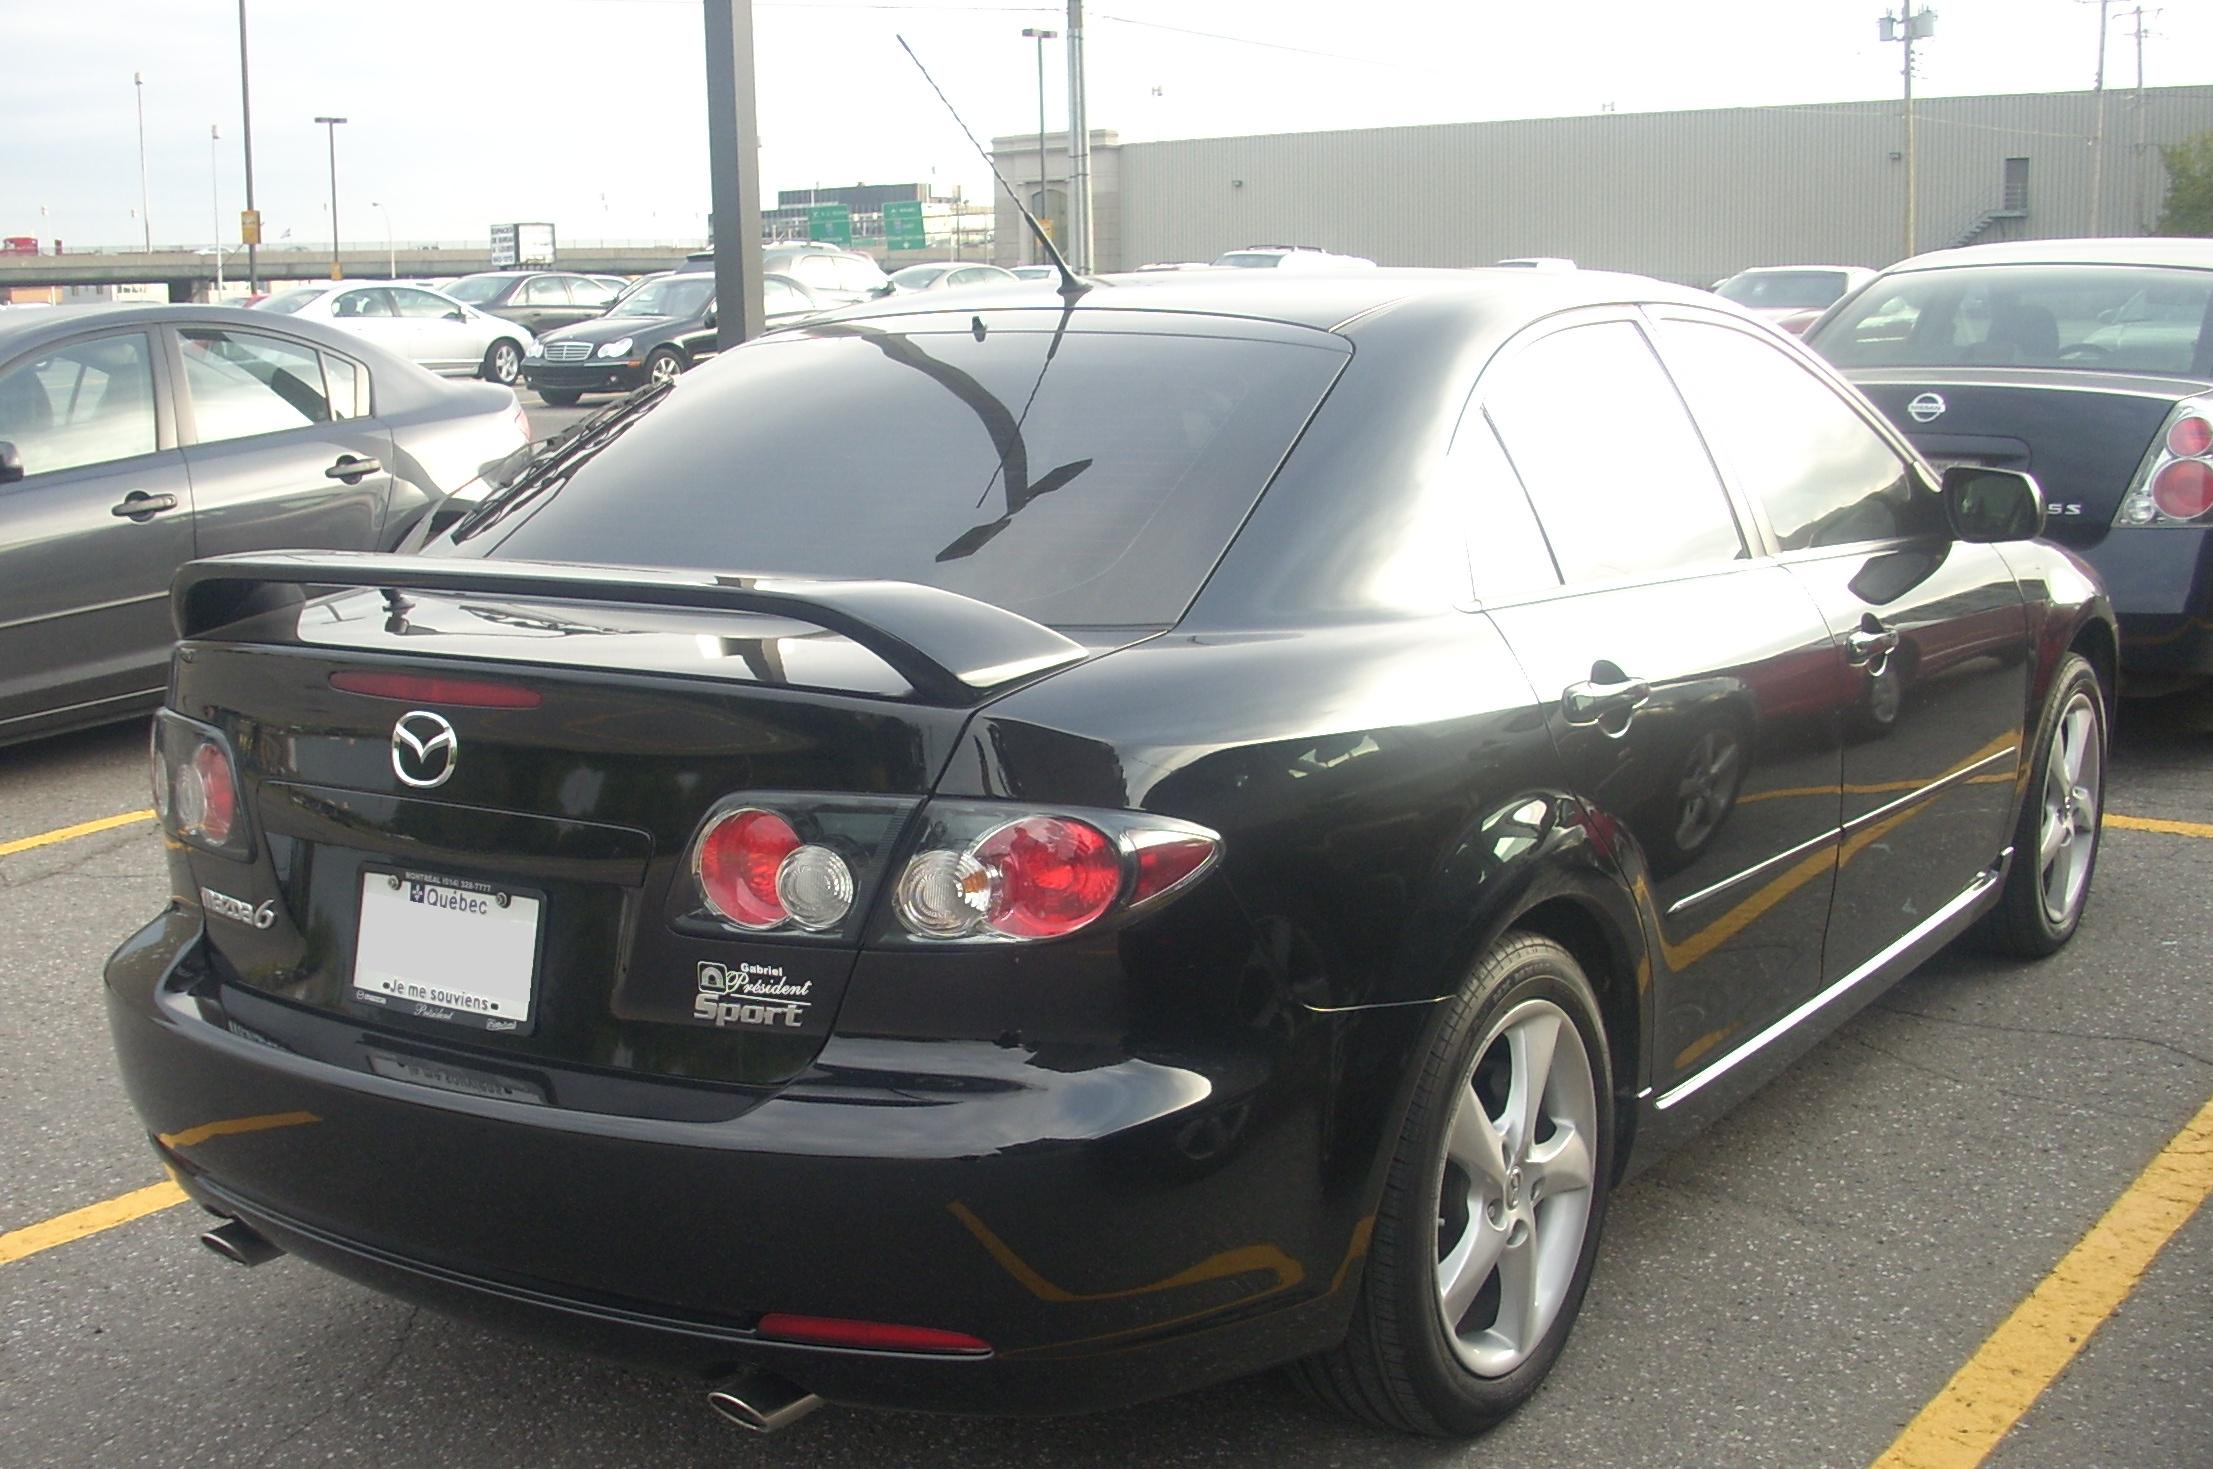 https://upload.wikimedia.org/wikipedia/commons/b/b1/%2706-%2708_Mazda6_Sport_Hatchback_%28Rear%29.JPG